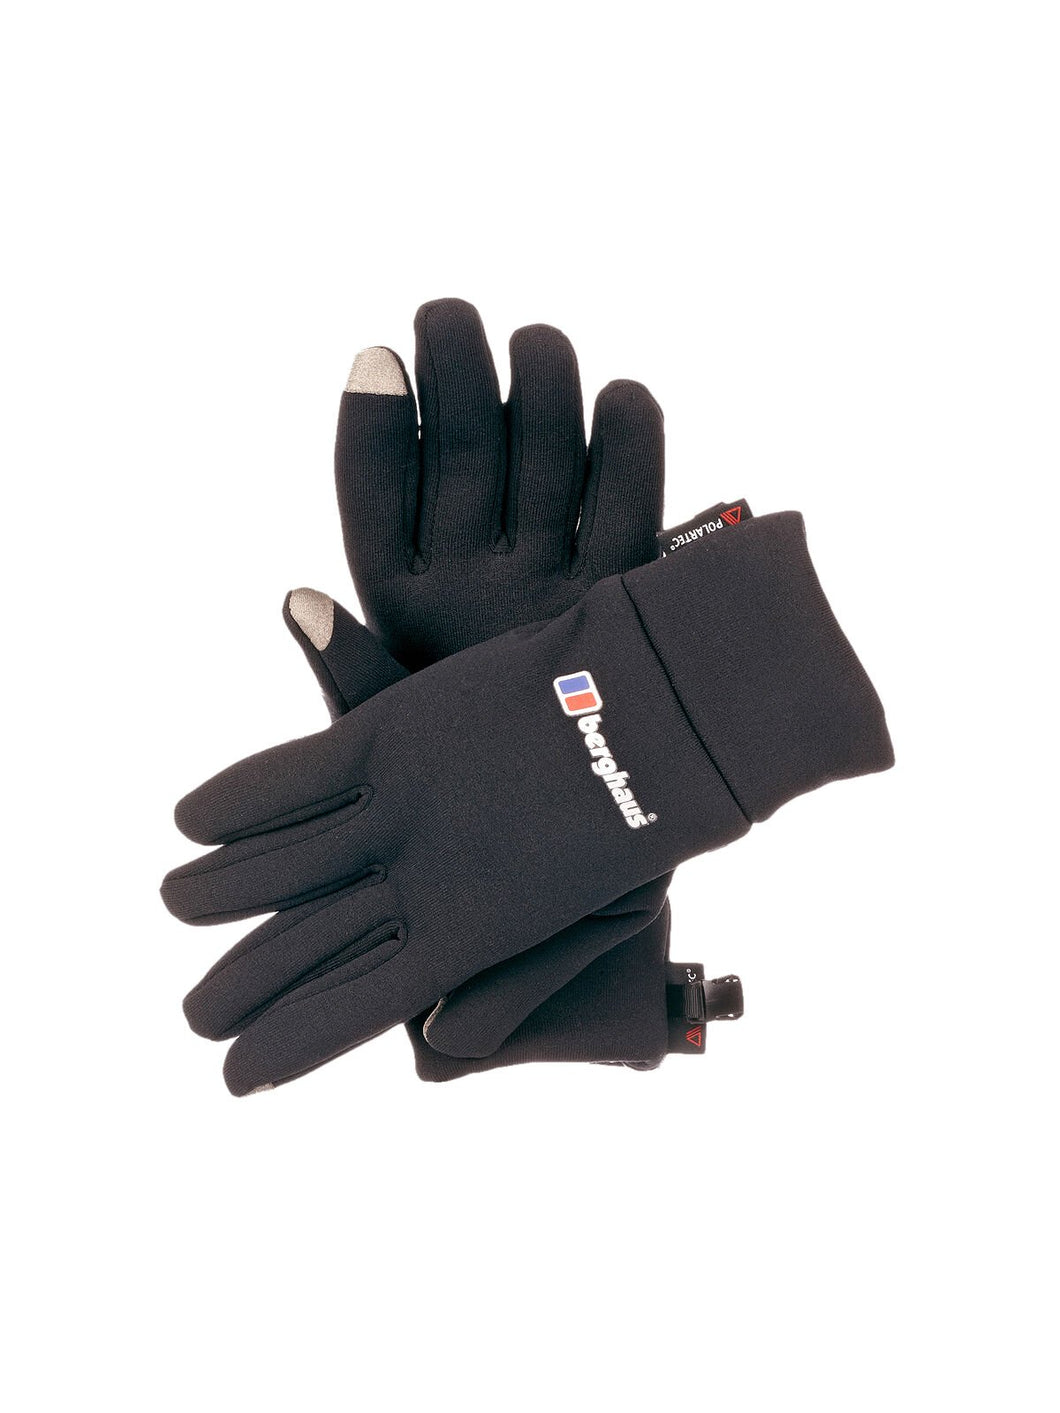 Berghaus Unisex Touch Screen Powerstretch Gloves